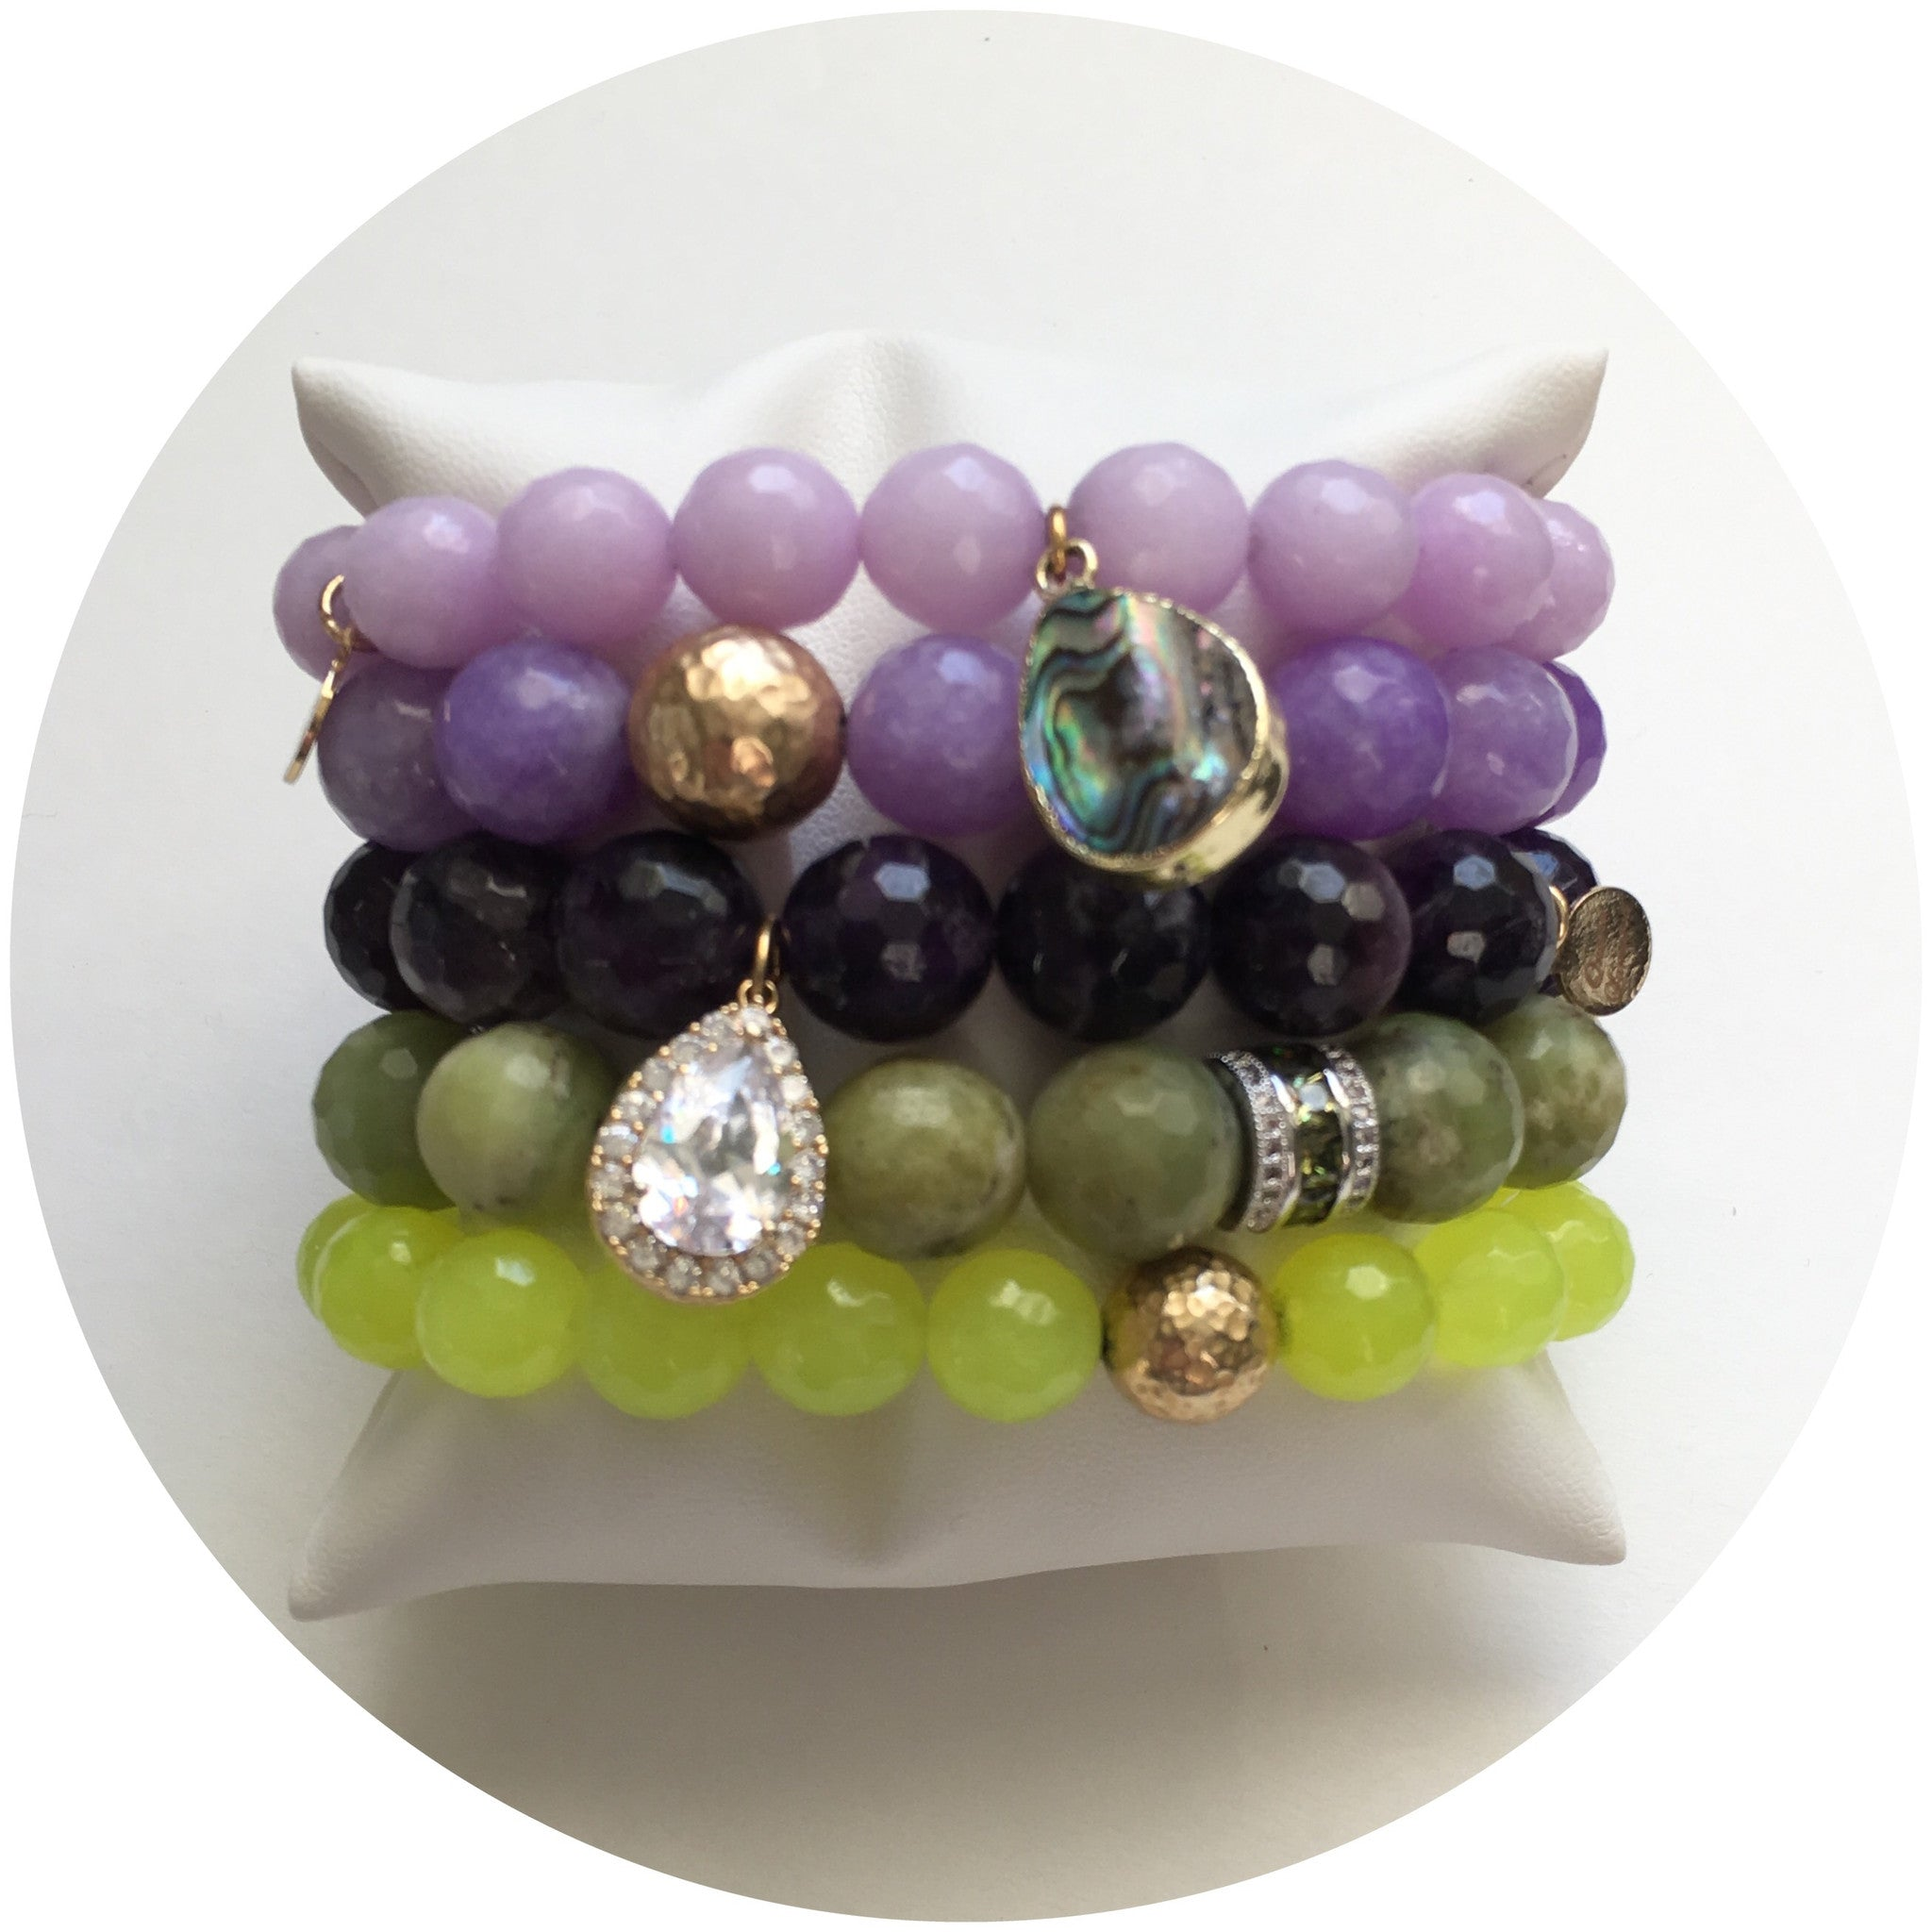 Fields of Lavender Armparty